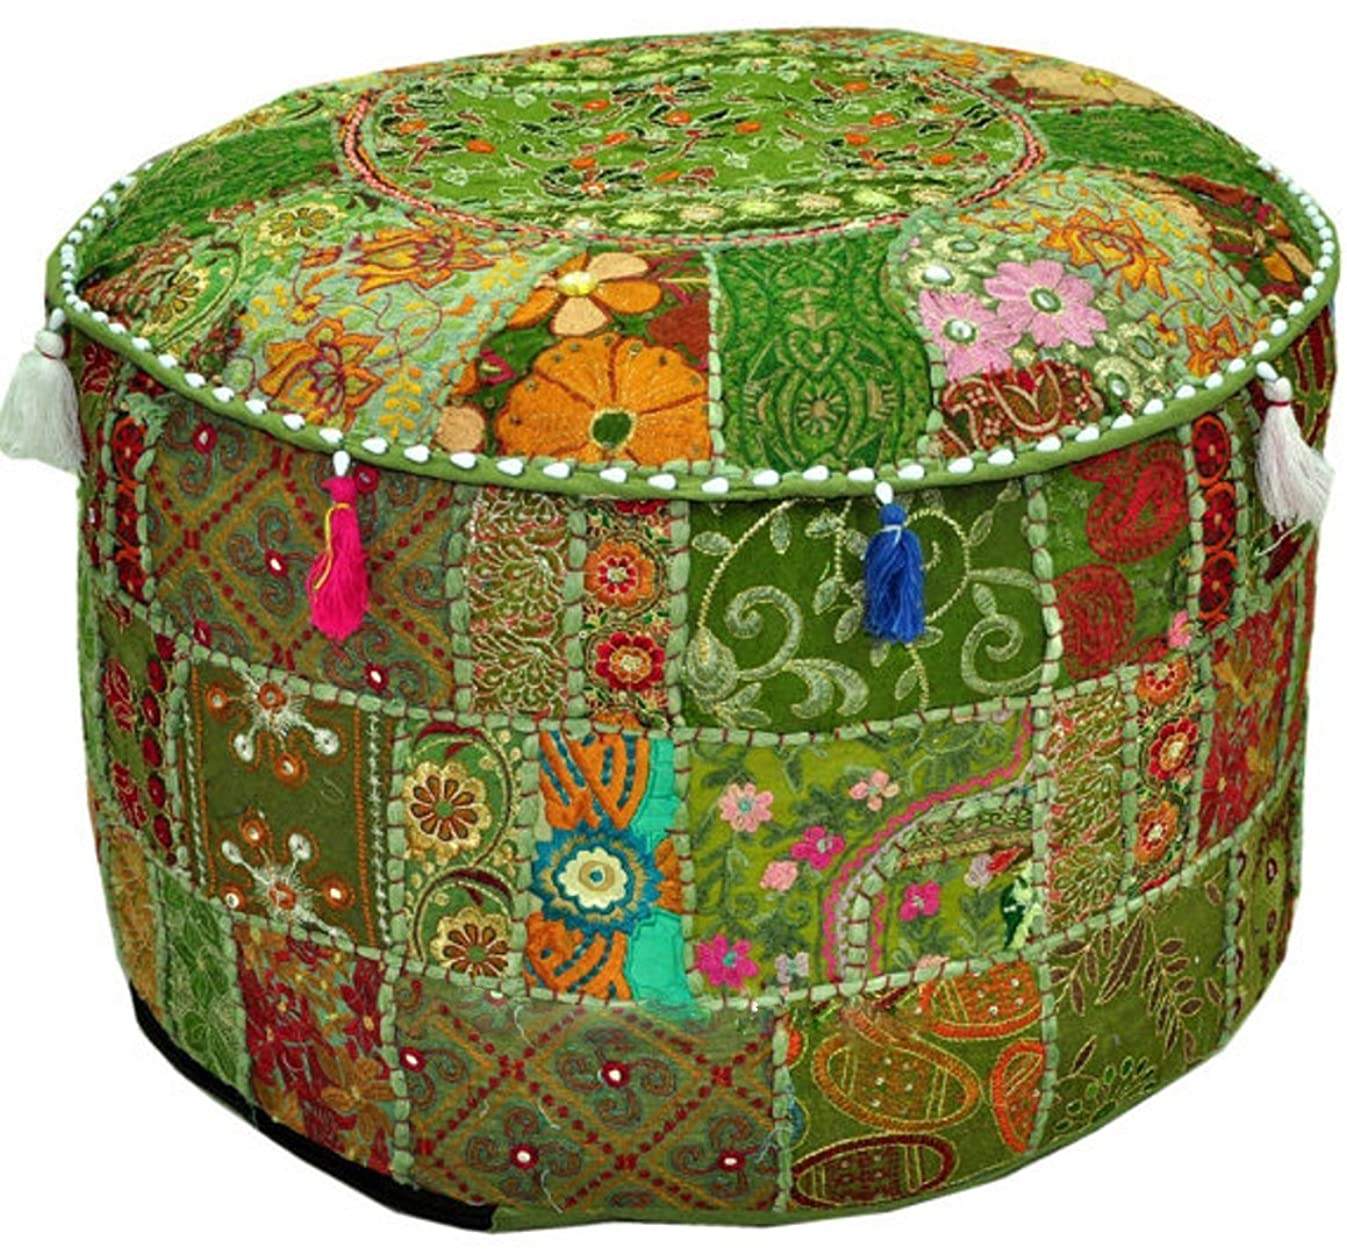 Aakriti Gallery Indian Pouf Footstool Ethnic Embroidered Pouf Cover, Indian Cotton Round Pouffe Ottoman Pouf Cover Pillow Ethnic Decor Art - Cover Only (18x13inch) (Green)